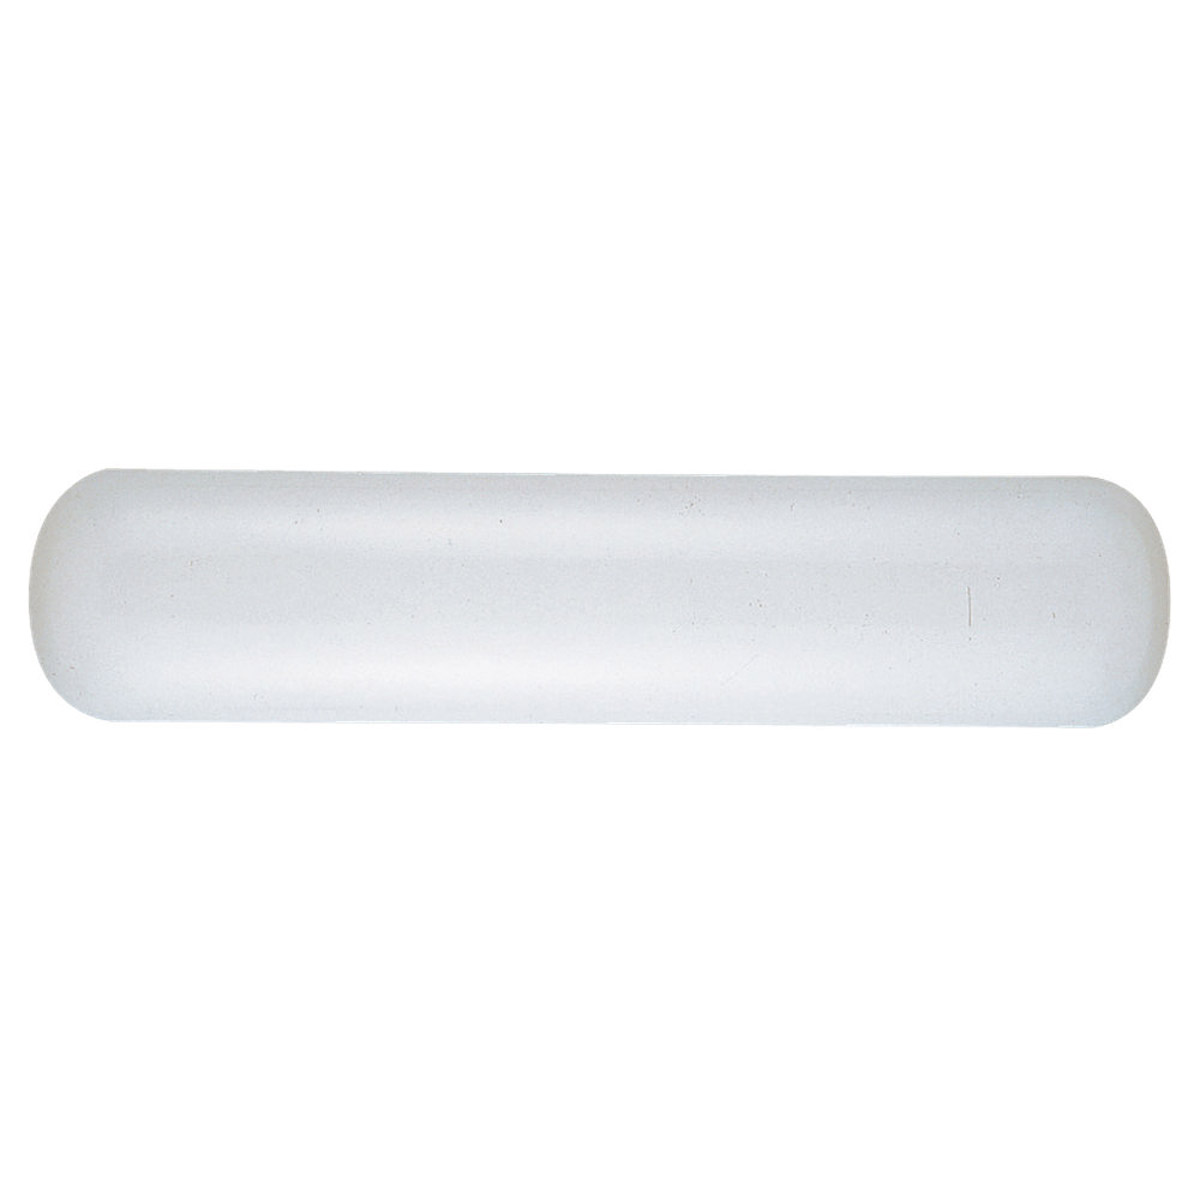 Sea Gull Lighting Pillow Lens Fluorescent 2 Light Wall Sconce in White Plastic 4908LE-68